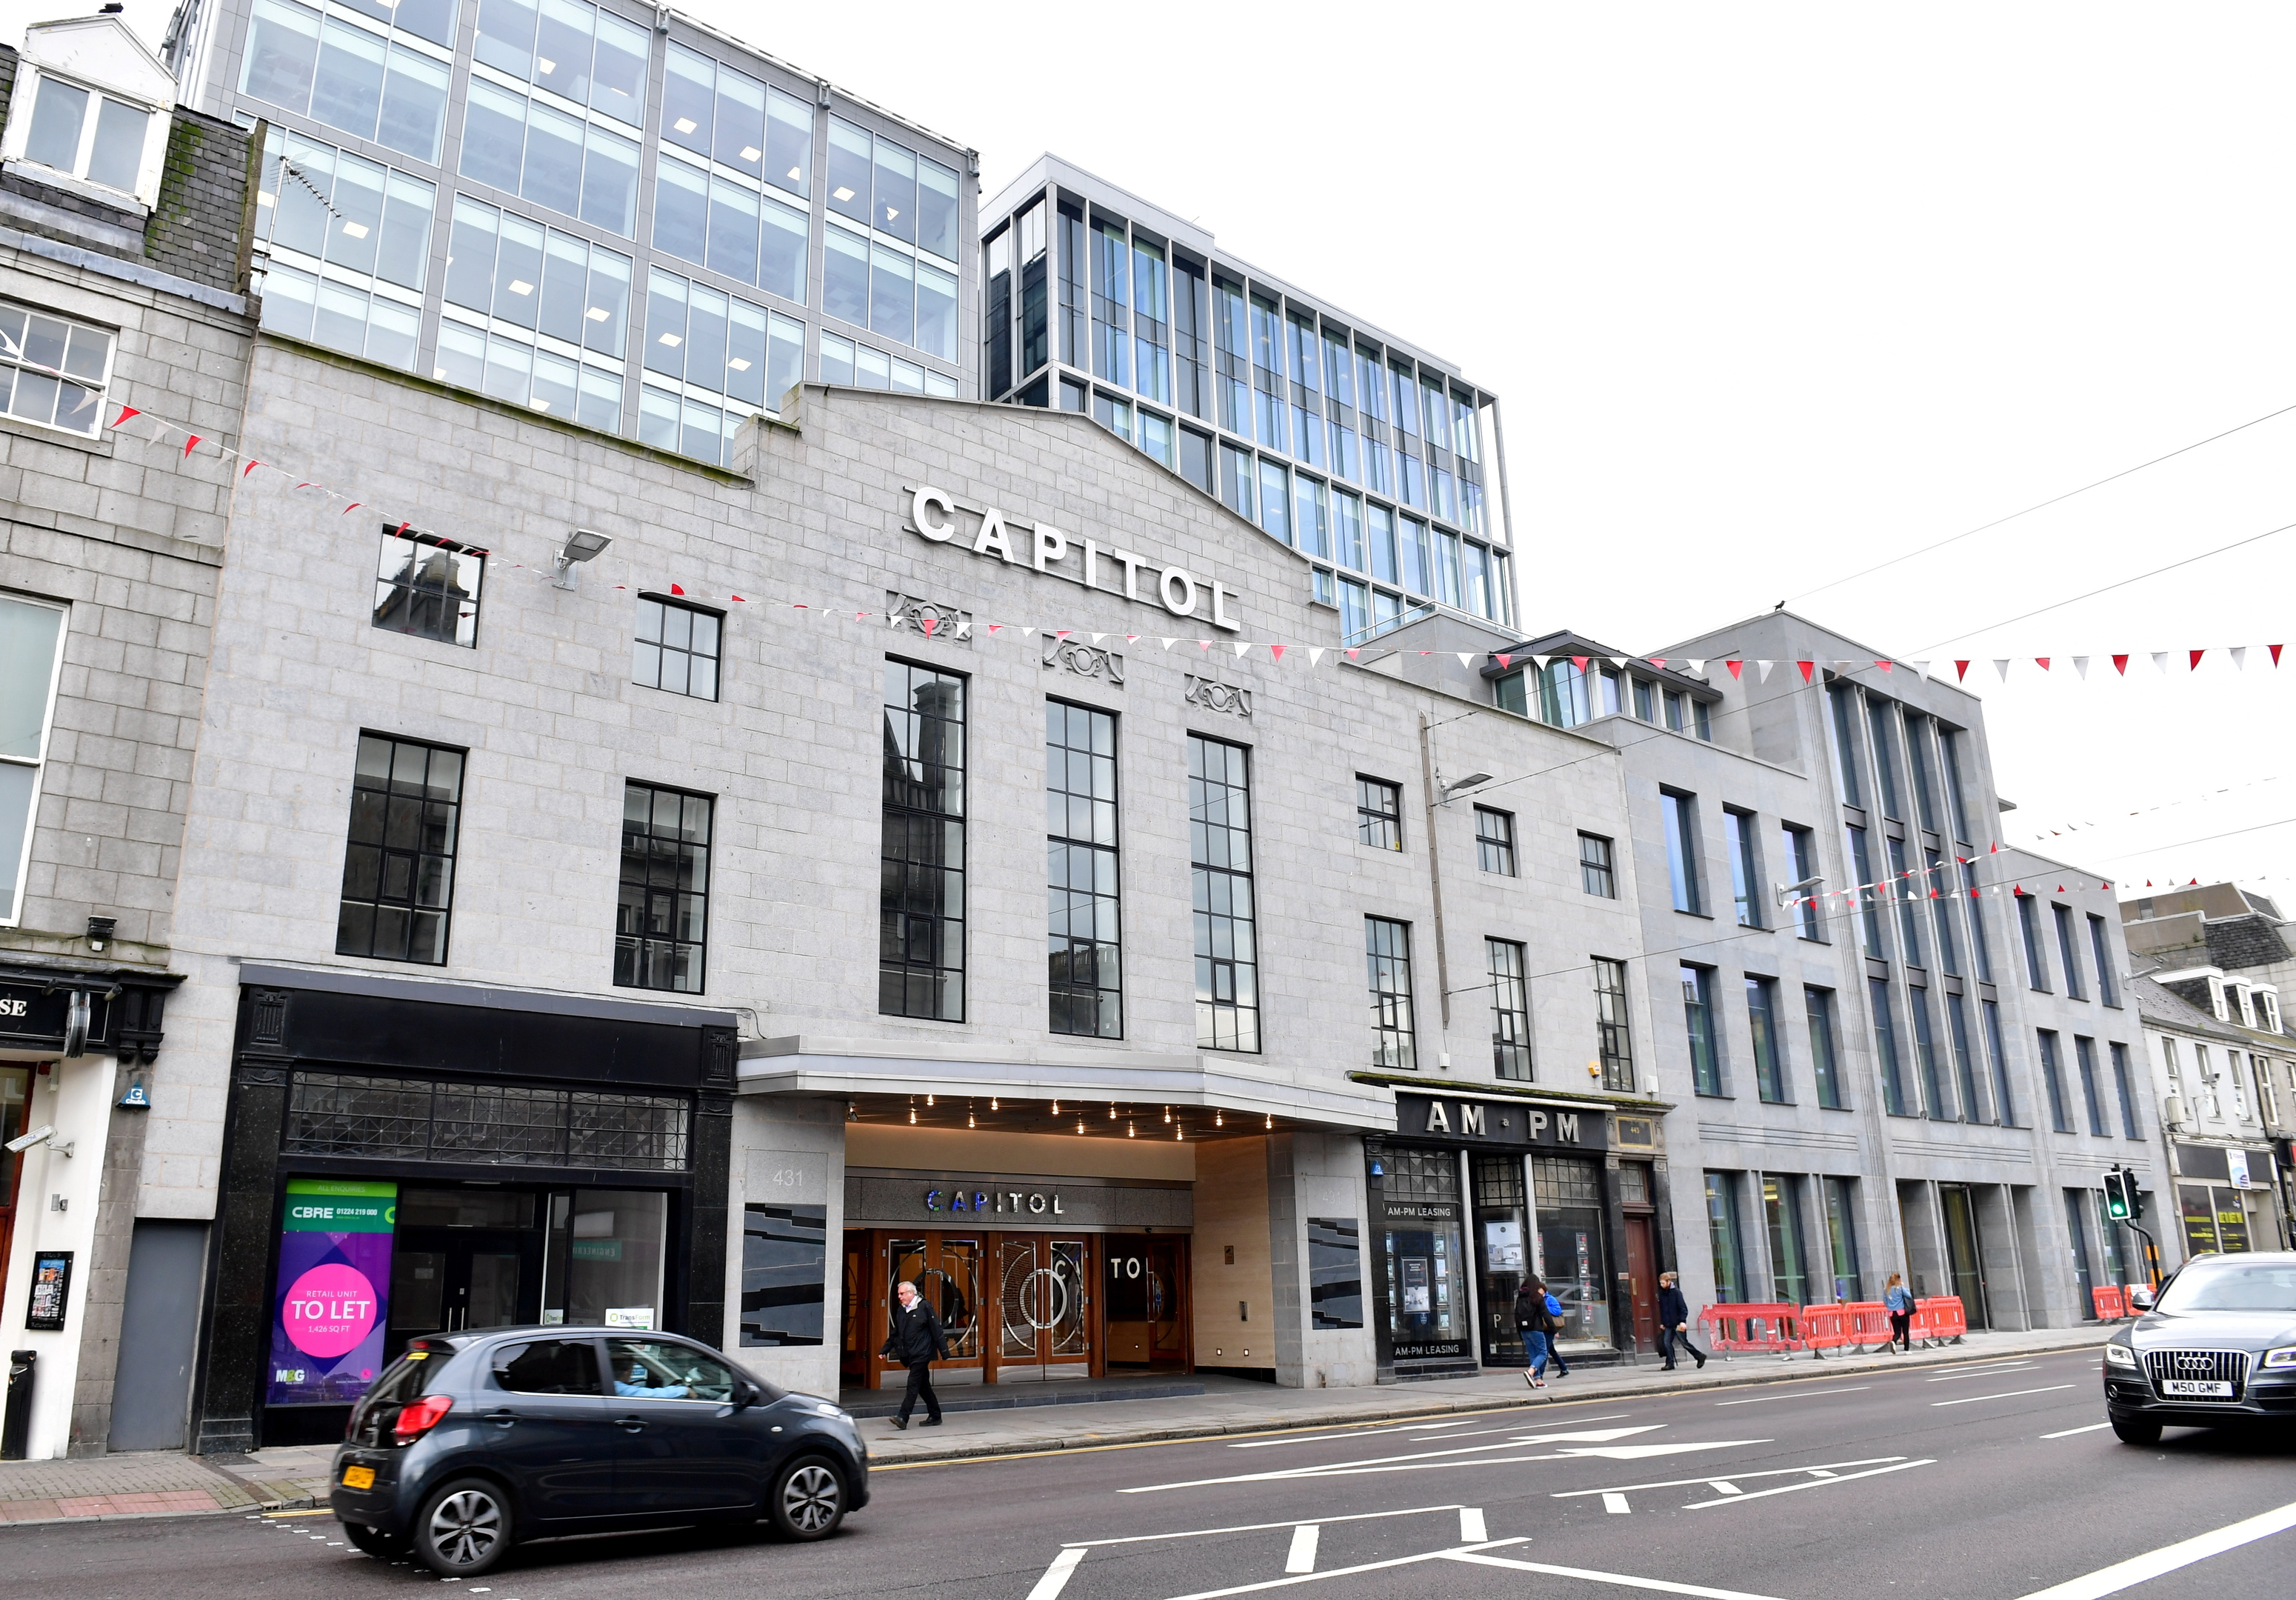 The Capitol building on Union Street, Aberdeen, which has won an award.